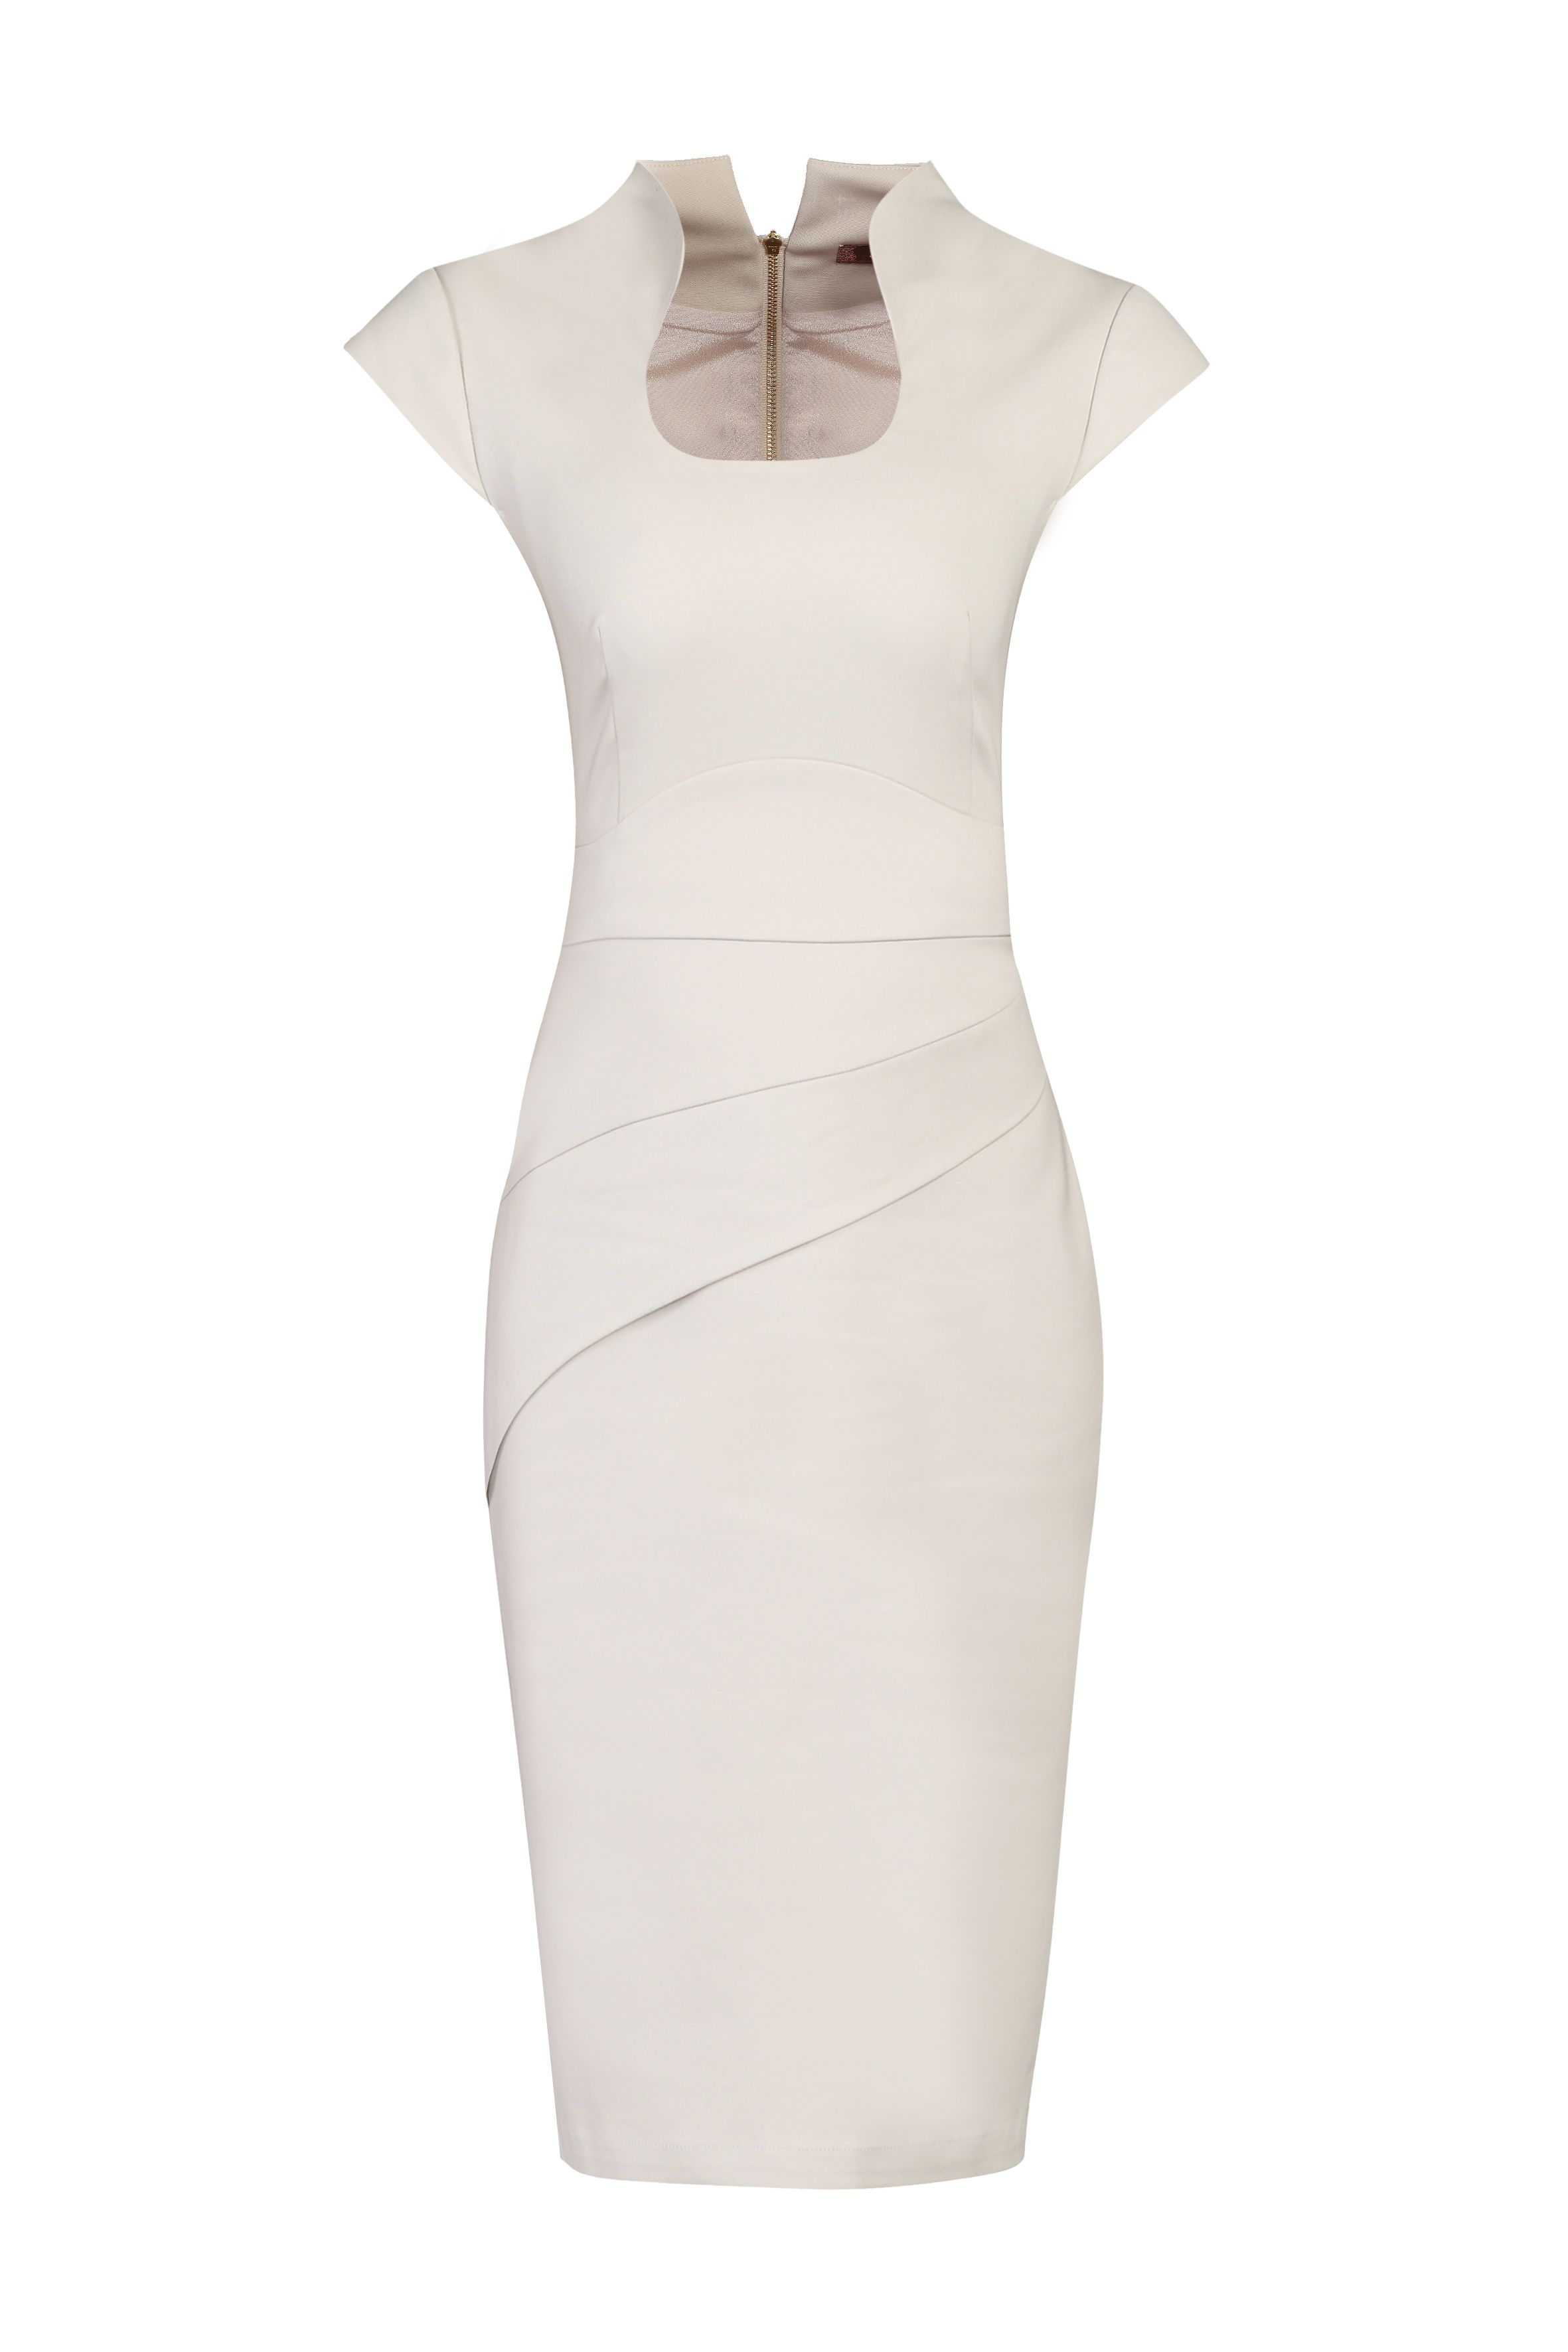 Jolie Moi Retro Neckline Fold Detail Dress, White